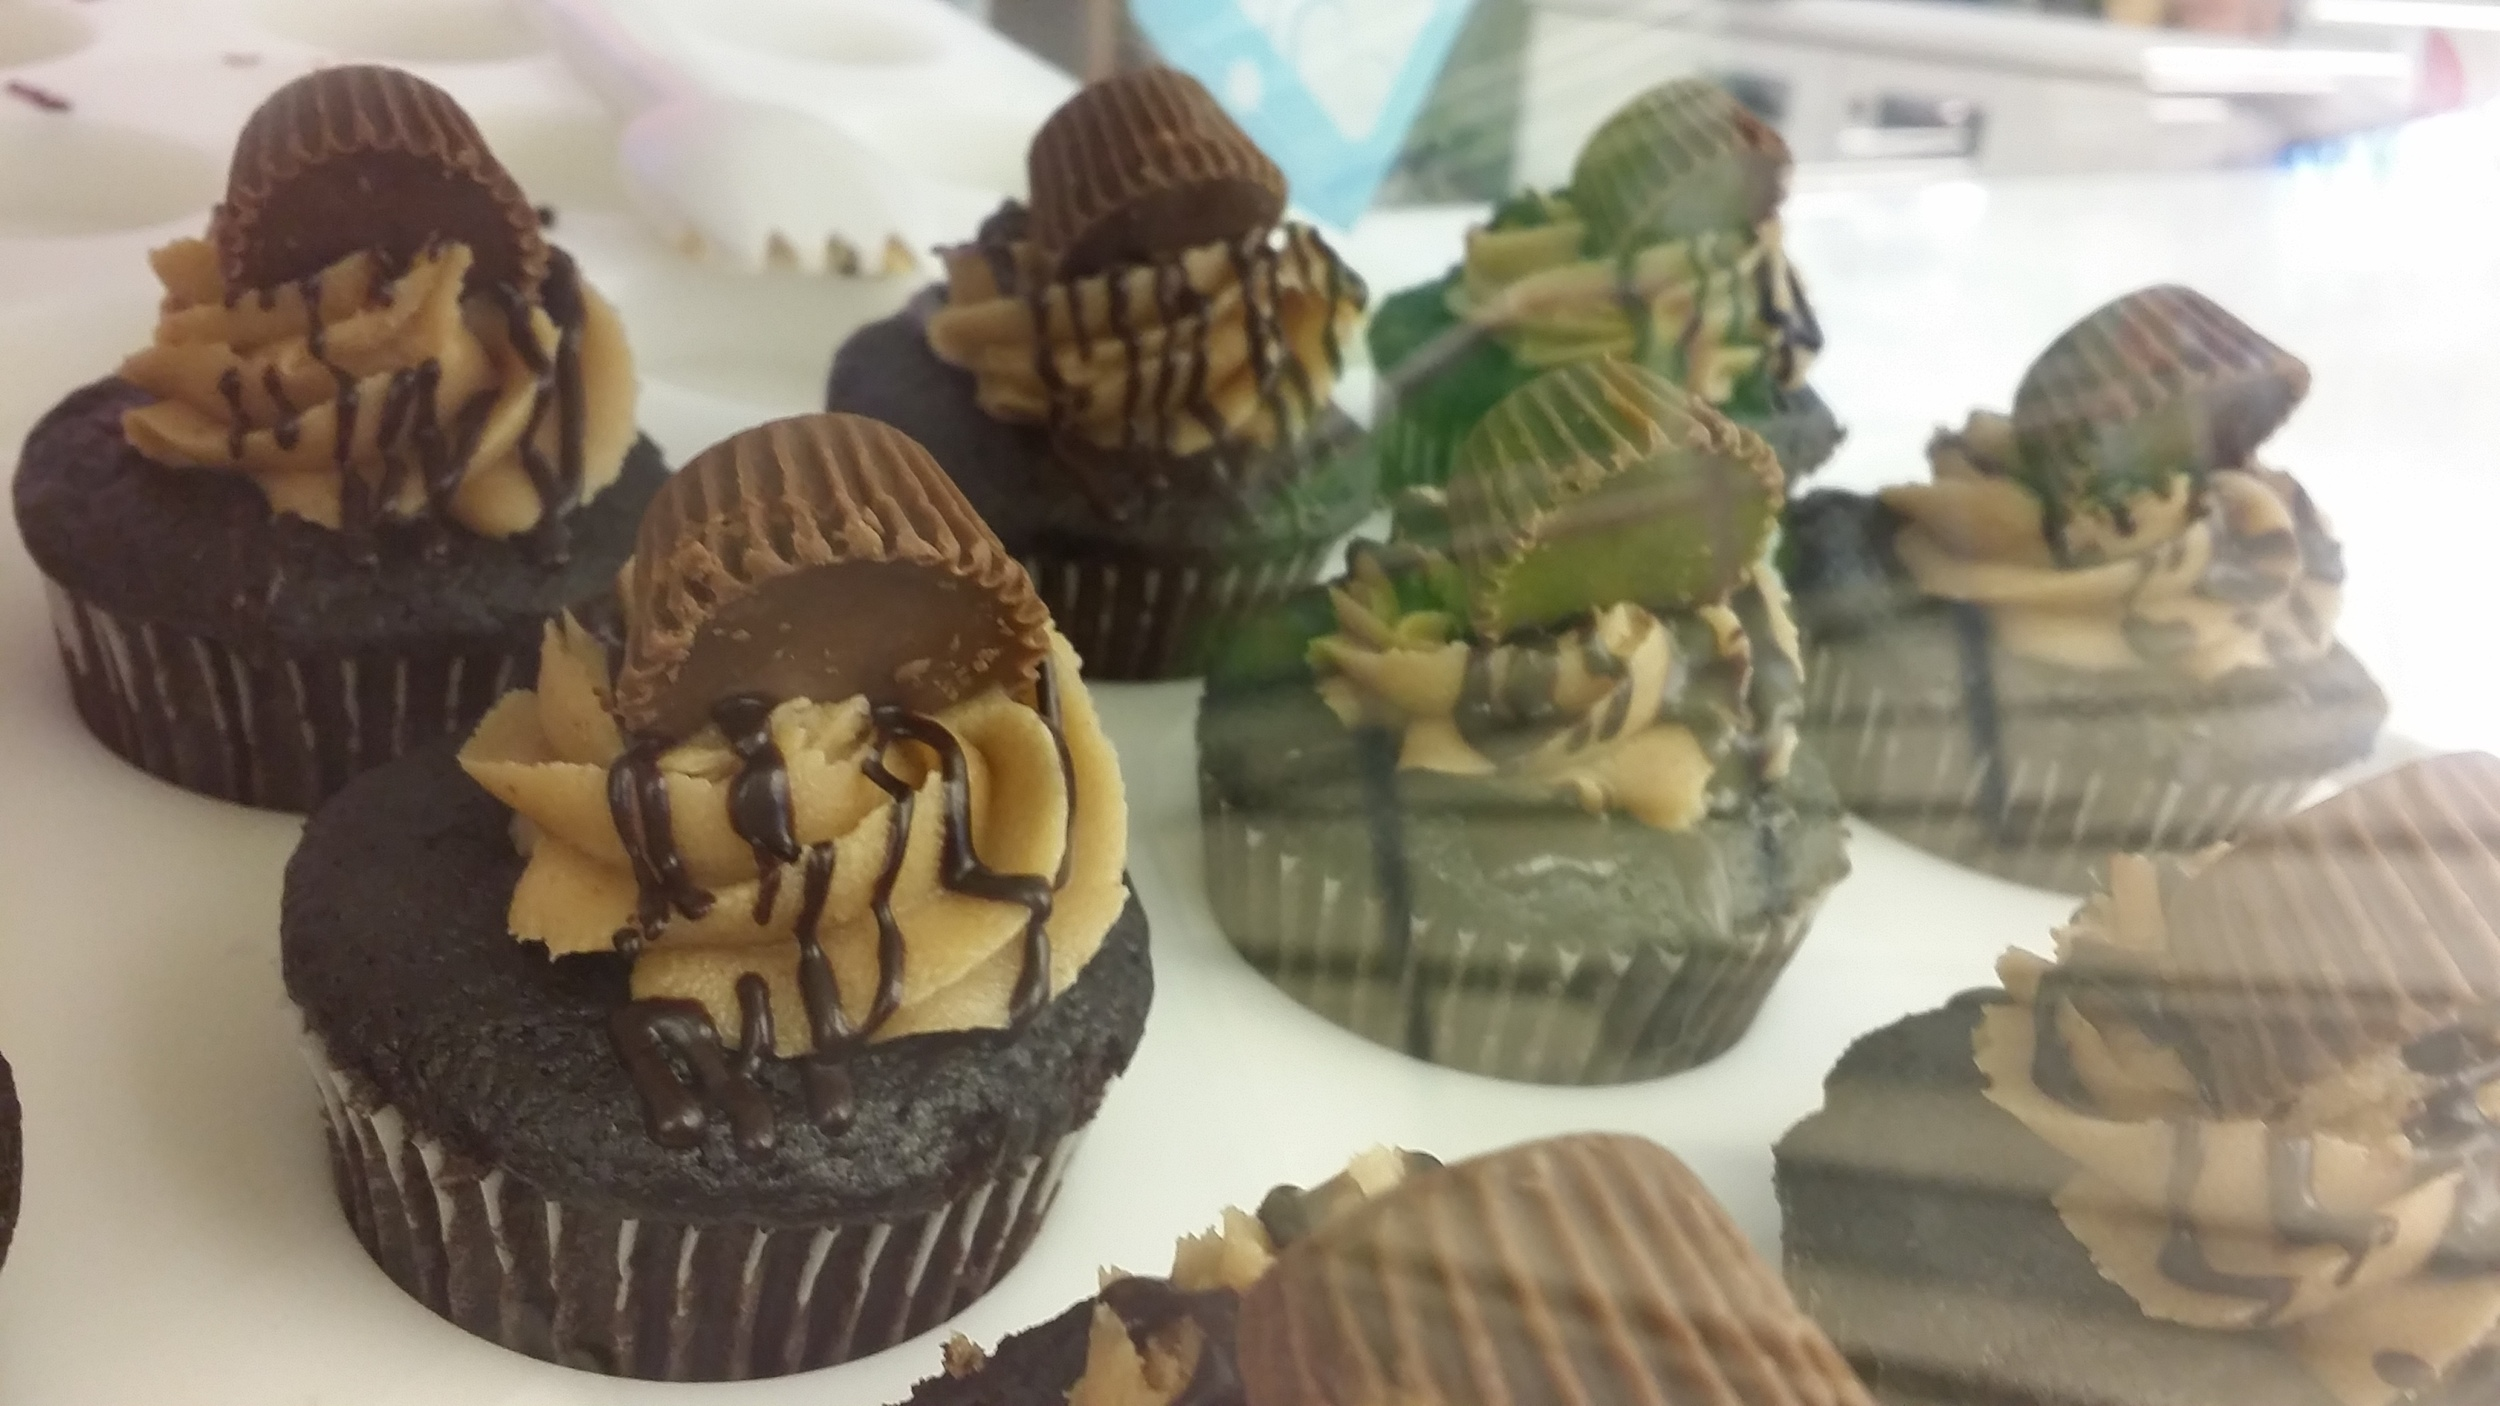 Cako Reese's Peanut Butter Cupcakes